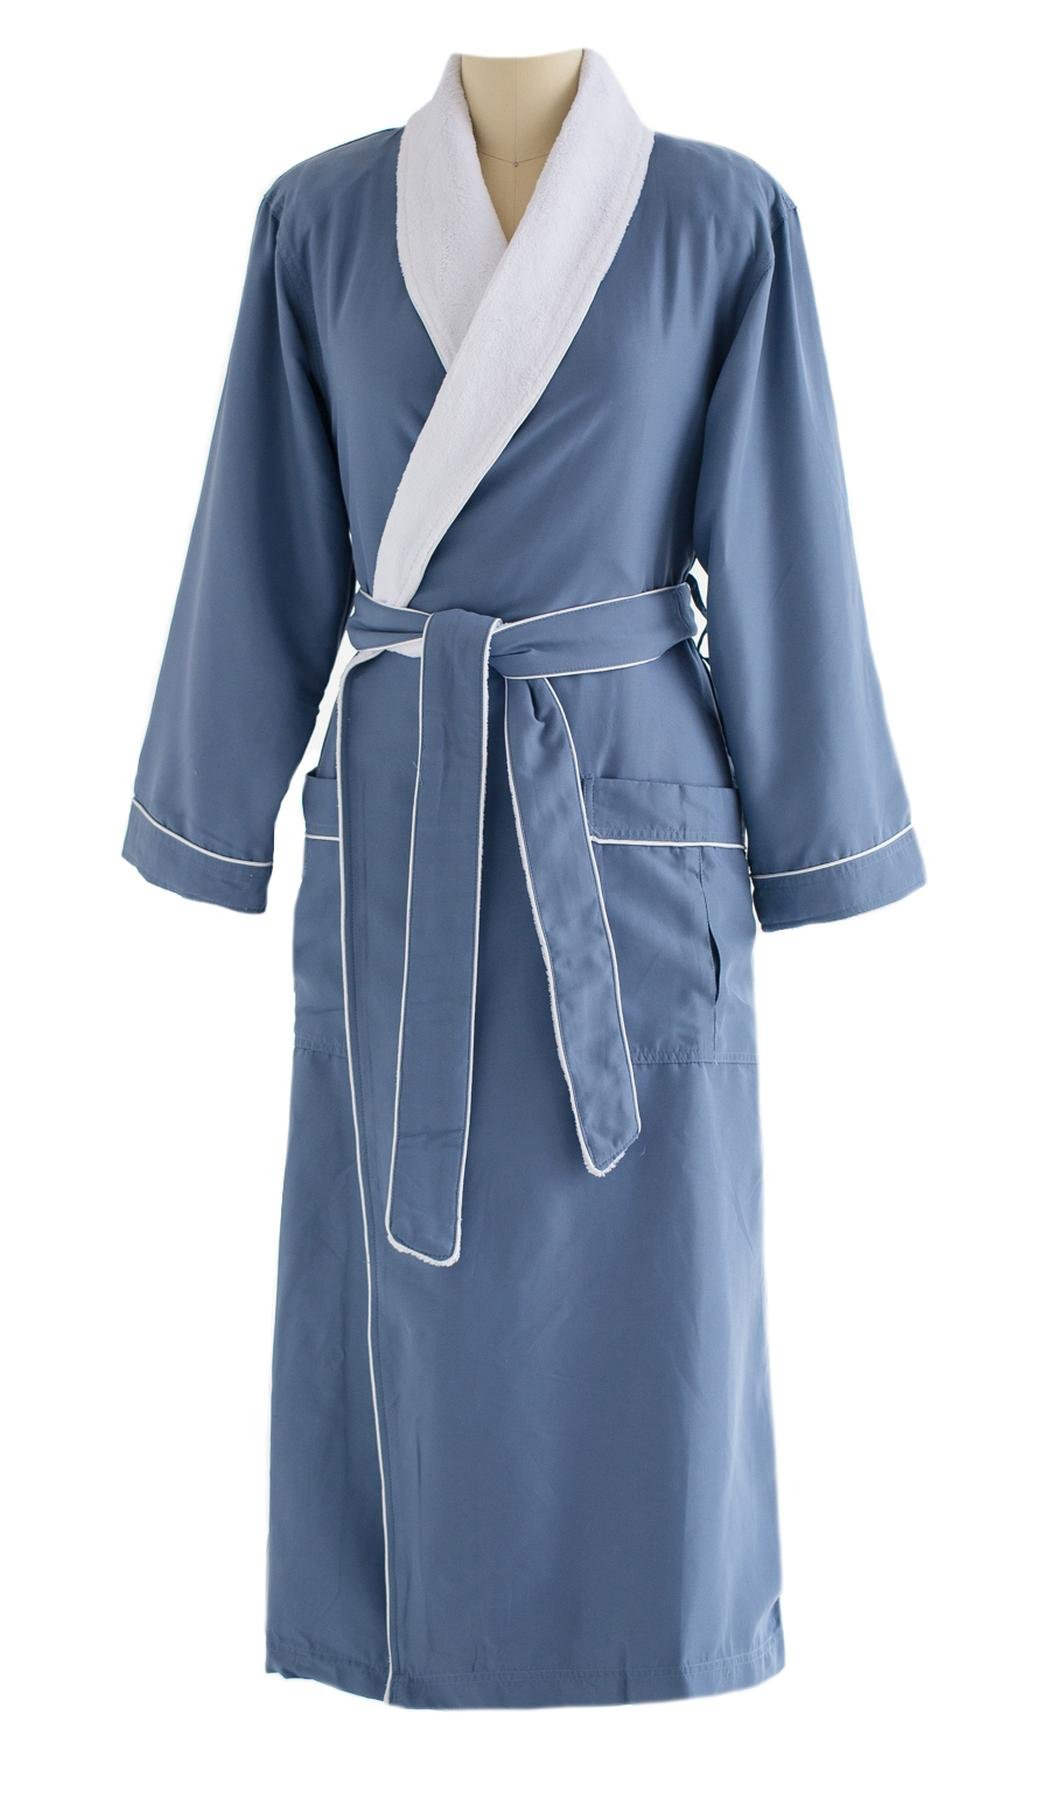 Chadsworth & Haig Microfiber Plush Bathrobe With Minx Lining - Men and Women - Periwinkle - X-Small